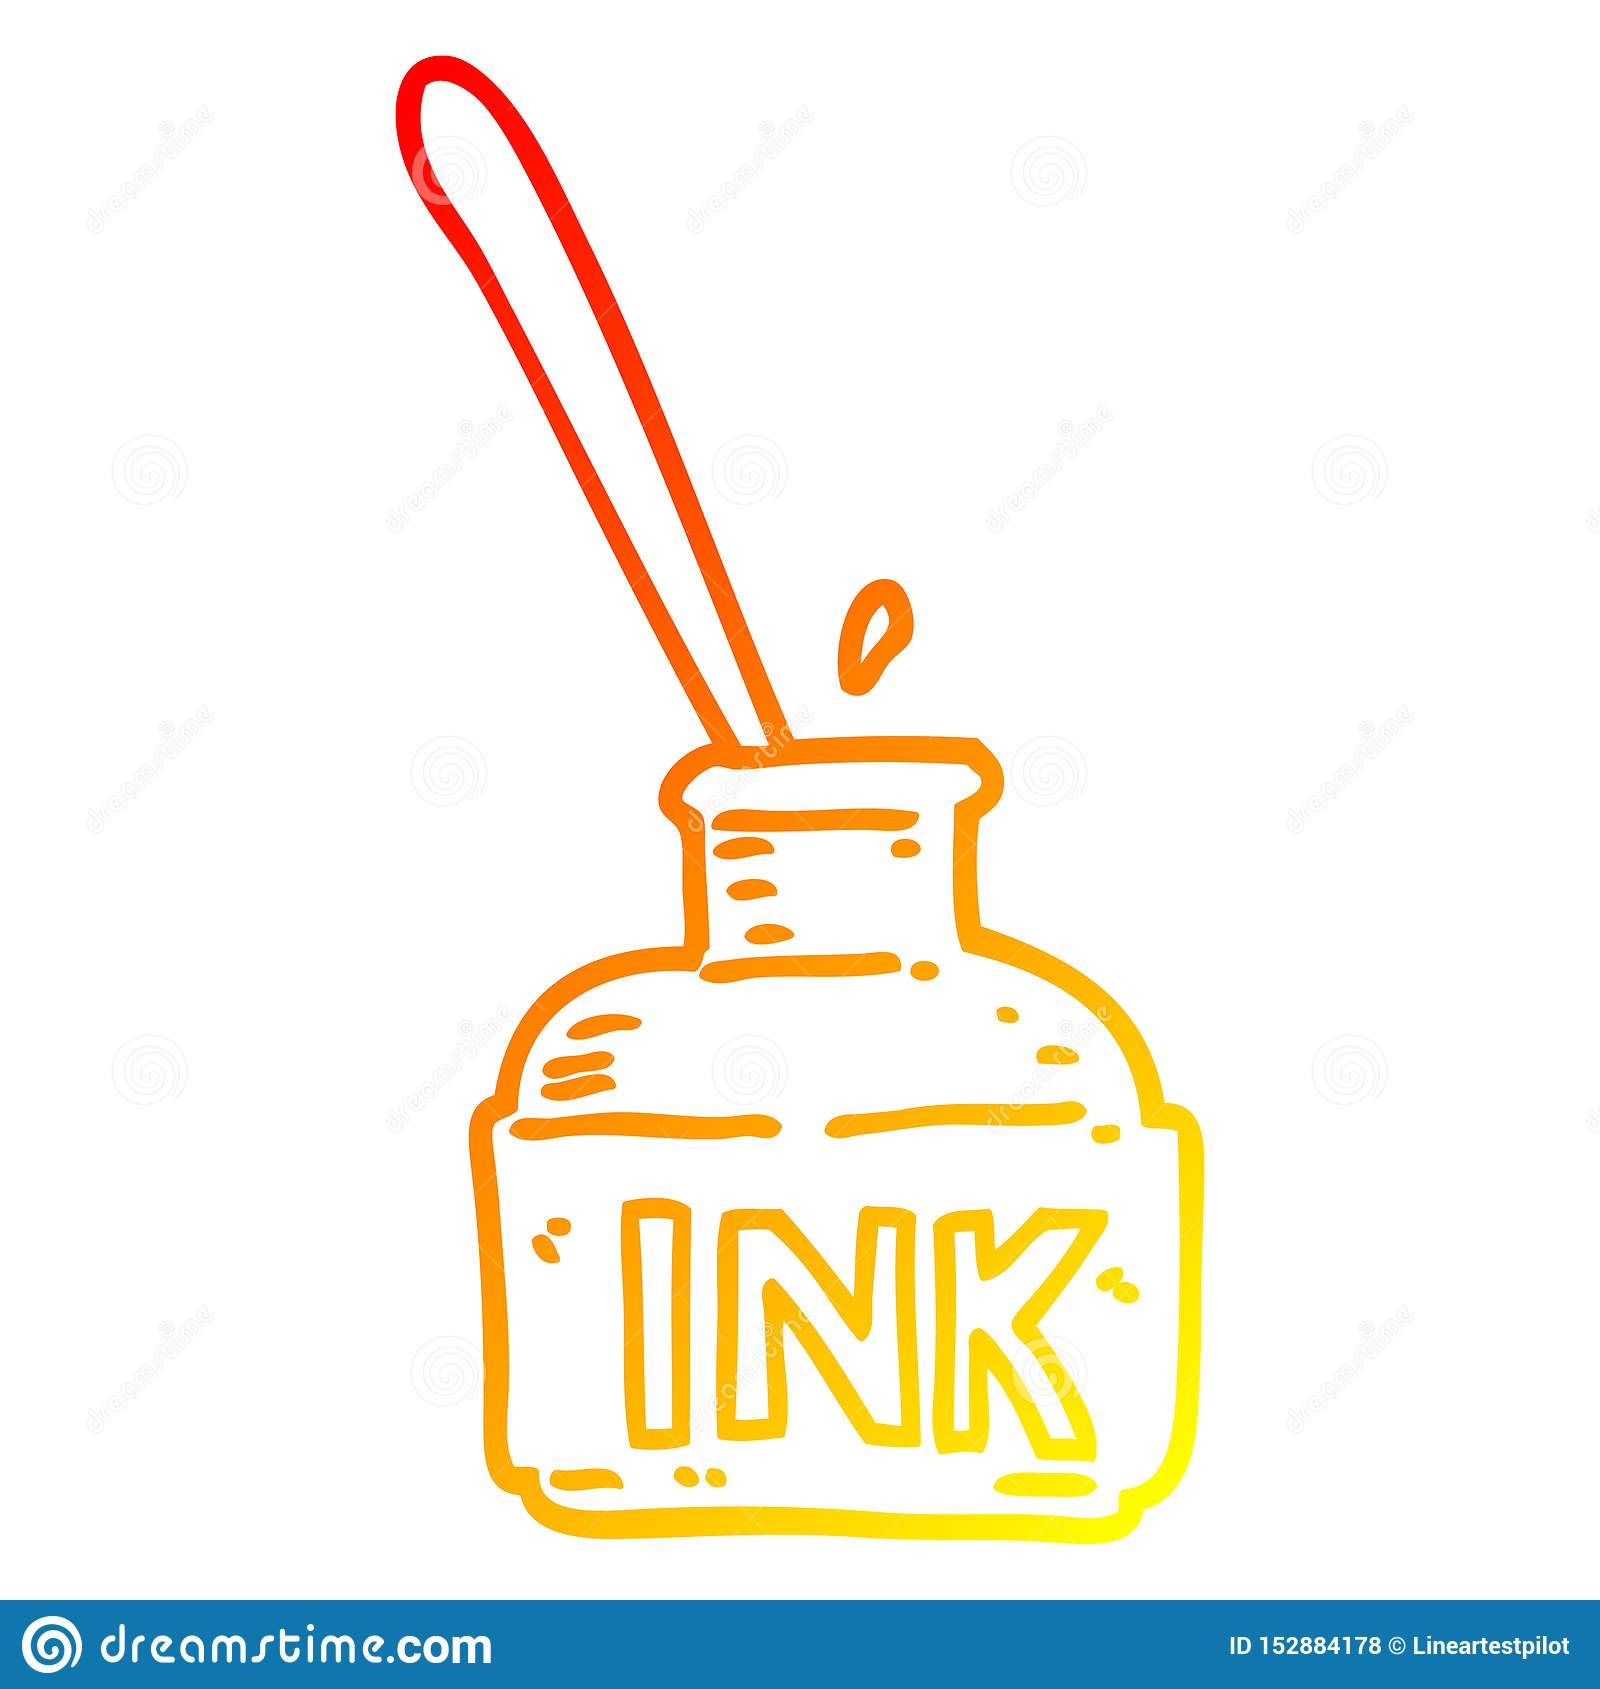 Ink Bottle Cartoon Stock Illustrations 1 541 Ink Bottle Cartoon Stock Illustrations Vectors Clipart Dreamstime